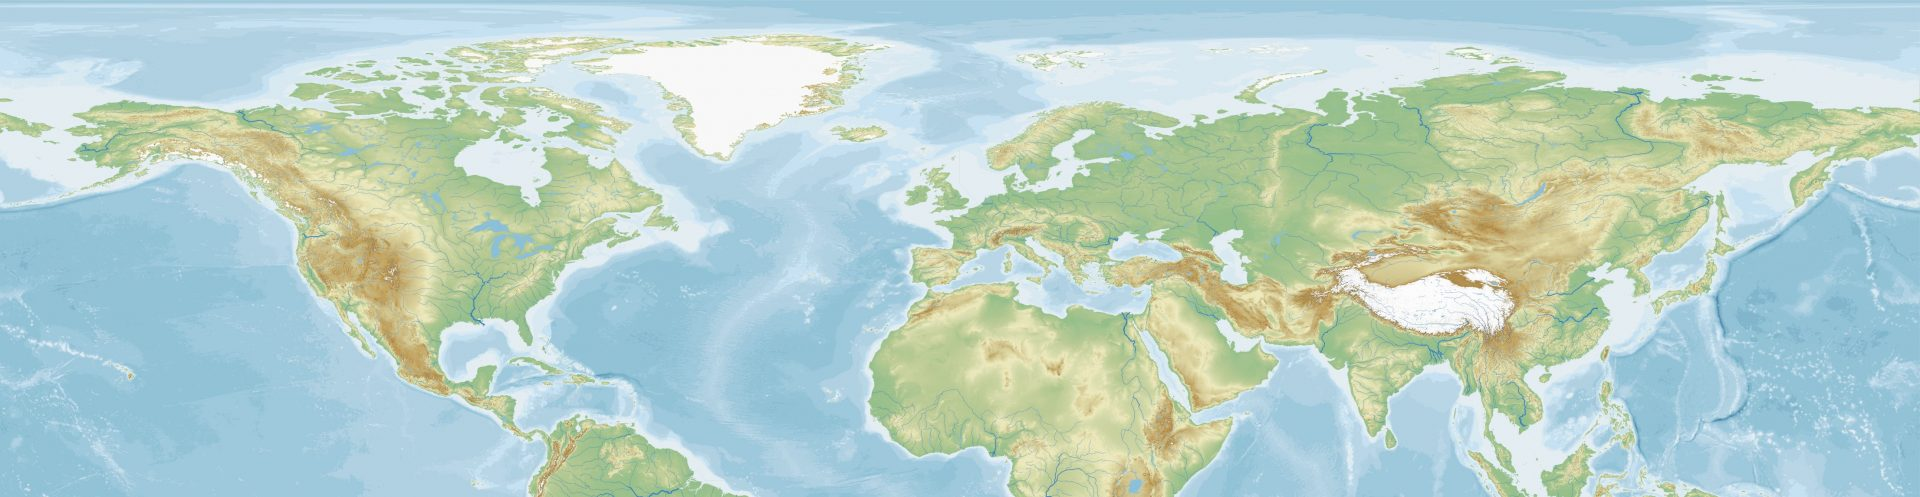 Equirectangular map of the world with a focus on the Northern hemisphere